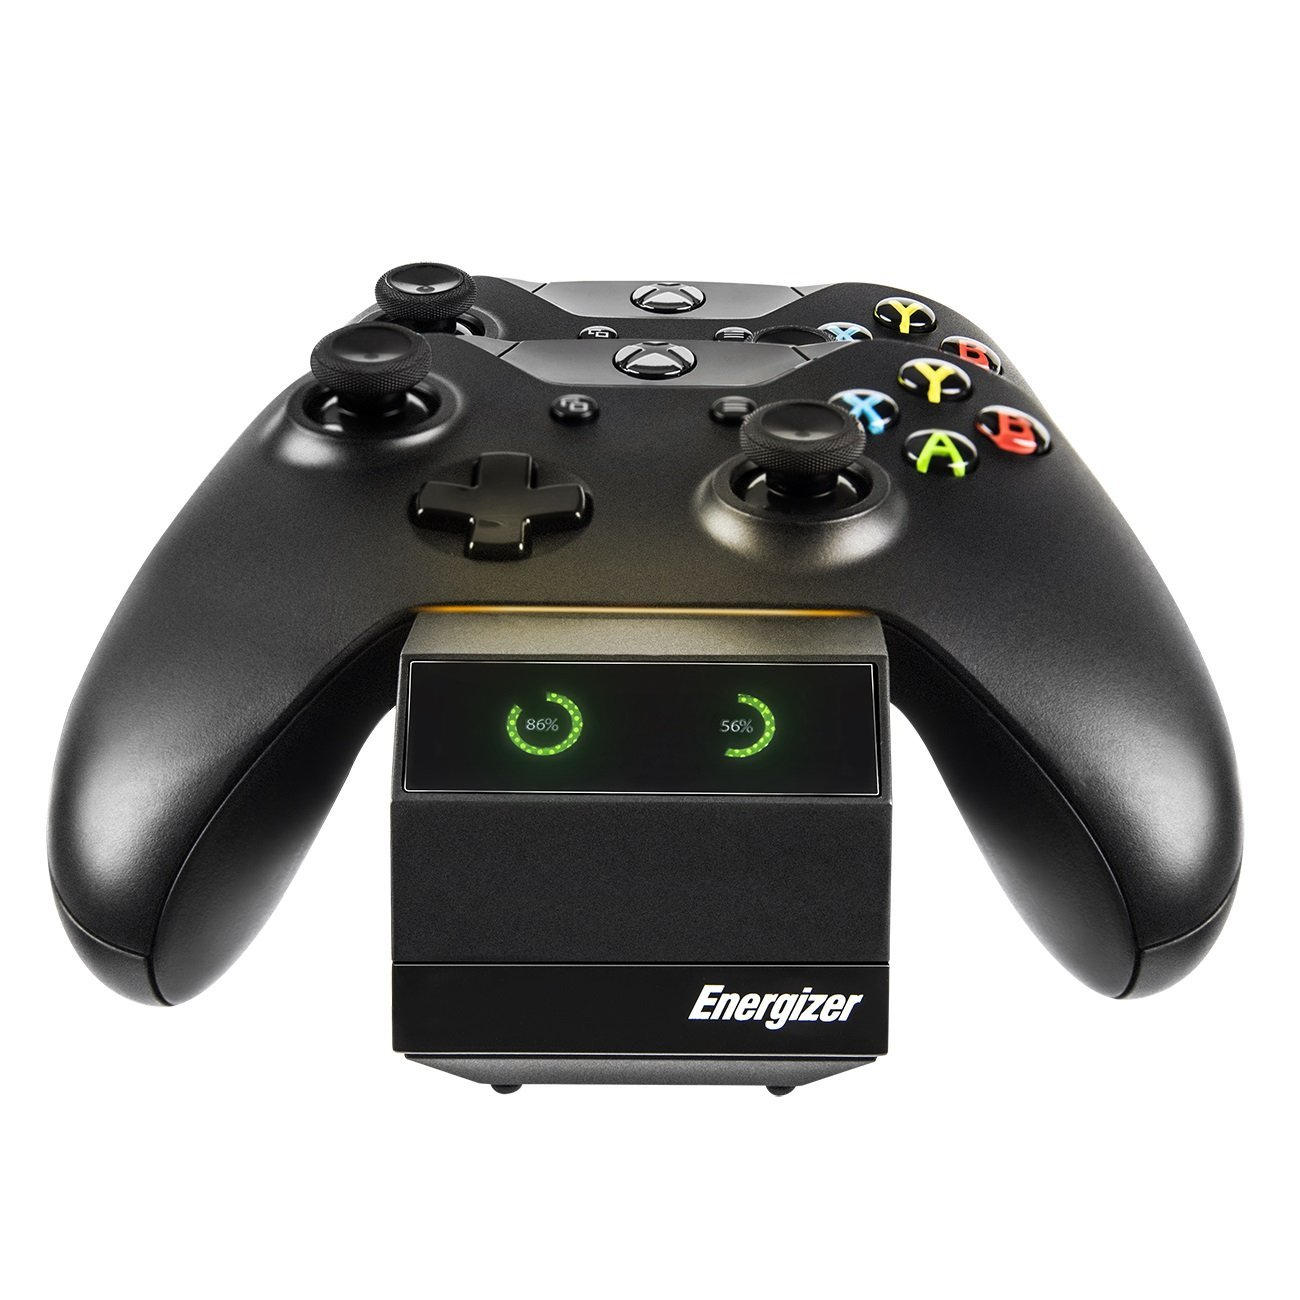 Energizer 2X Smart Charger For Xbox One And Energizer 2X